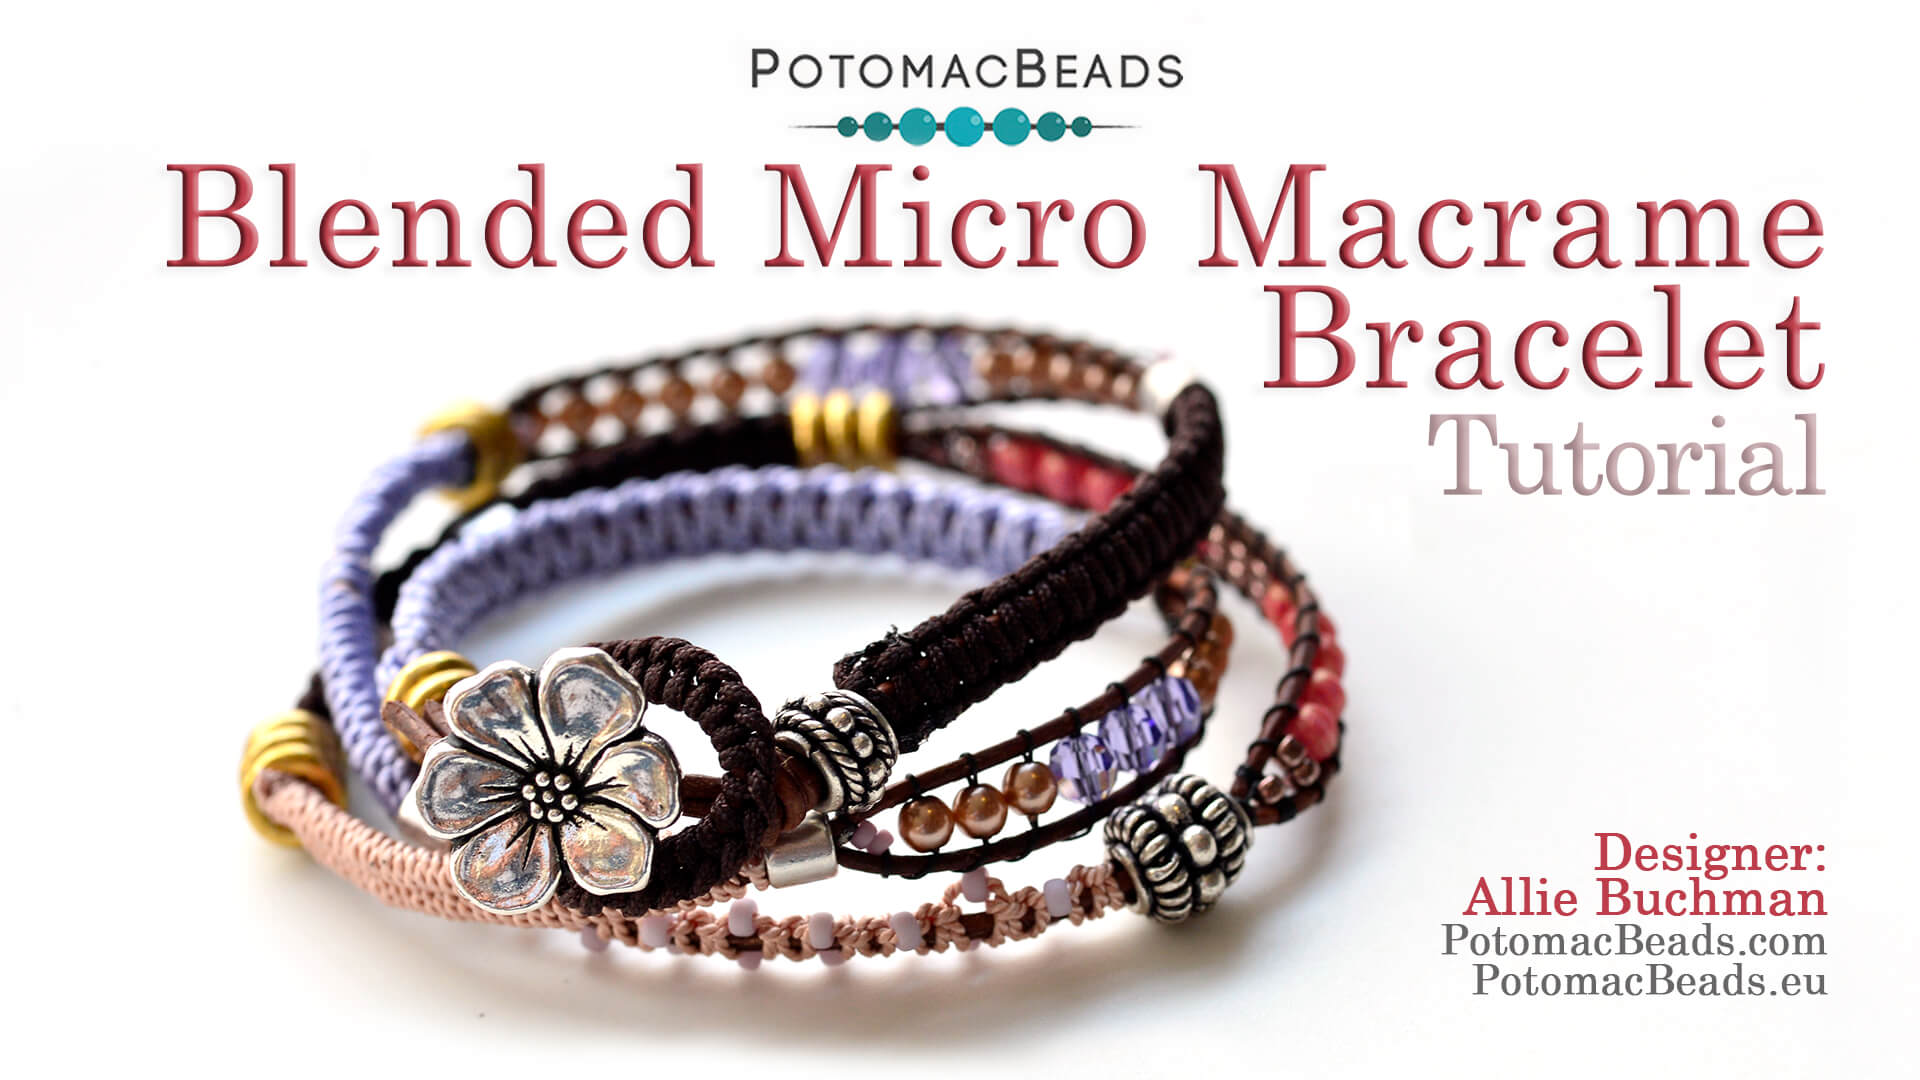 How to Bead / Videos Sorted by Beads / Pearl Videos (Czech & Freshwater) / Blended Micro Macrame Bracelet Tutorial